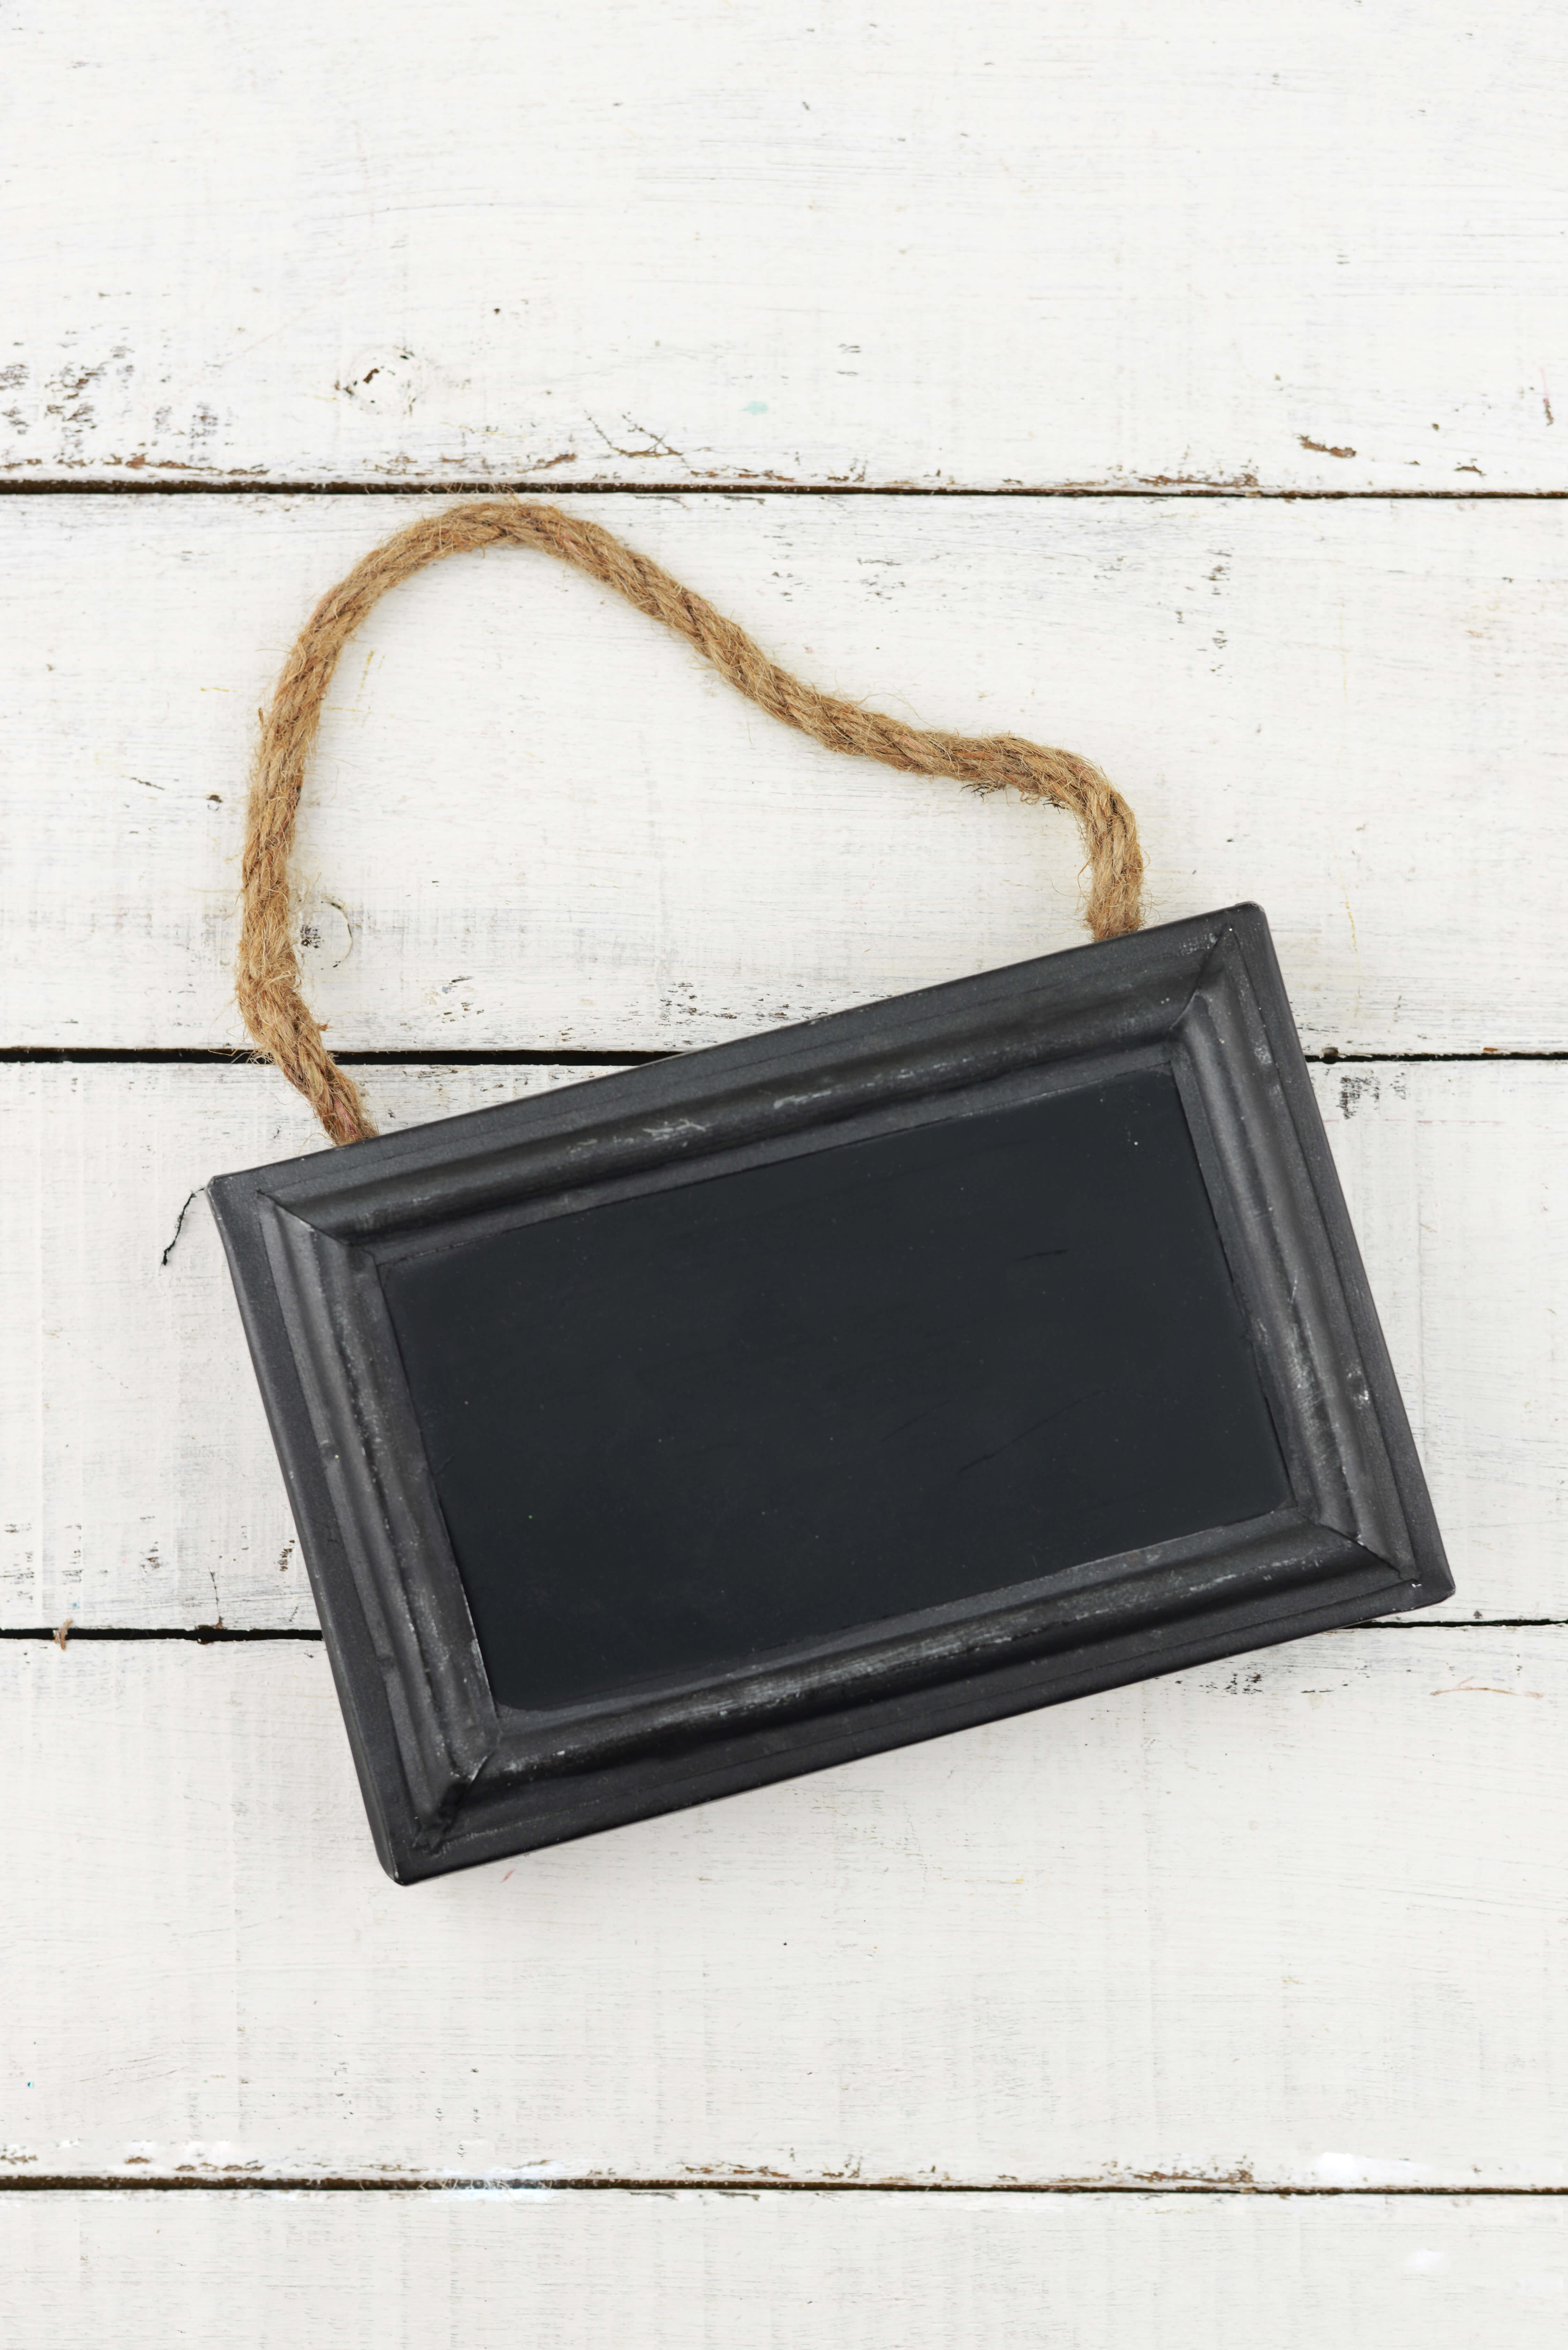 framed 5x7 chalkboard with rope for hanging